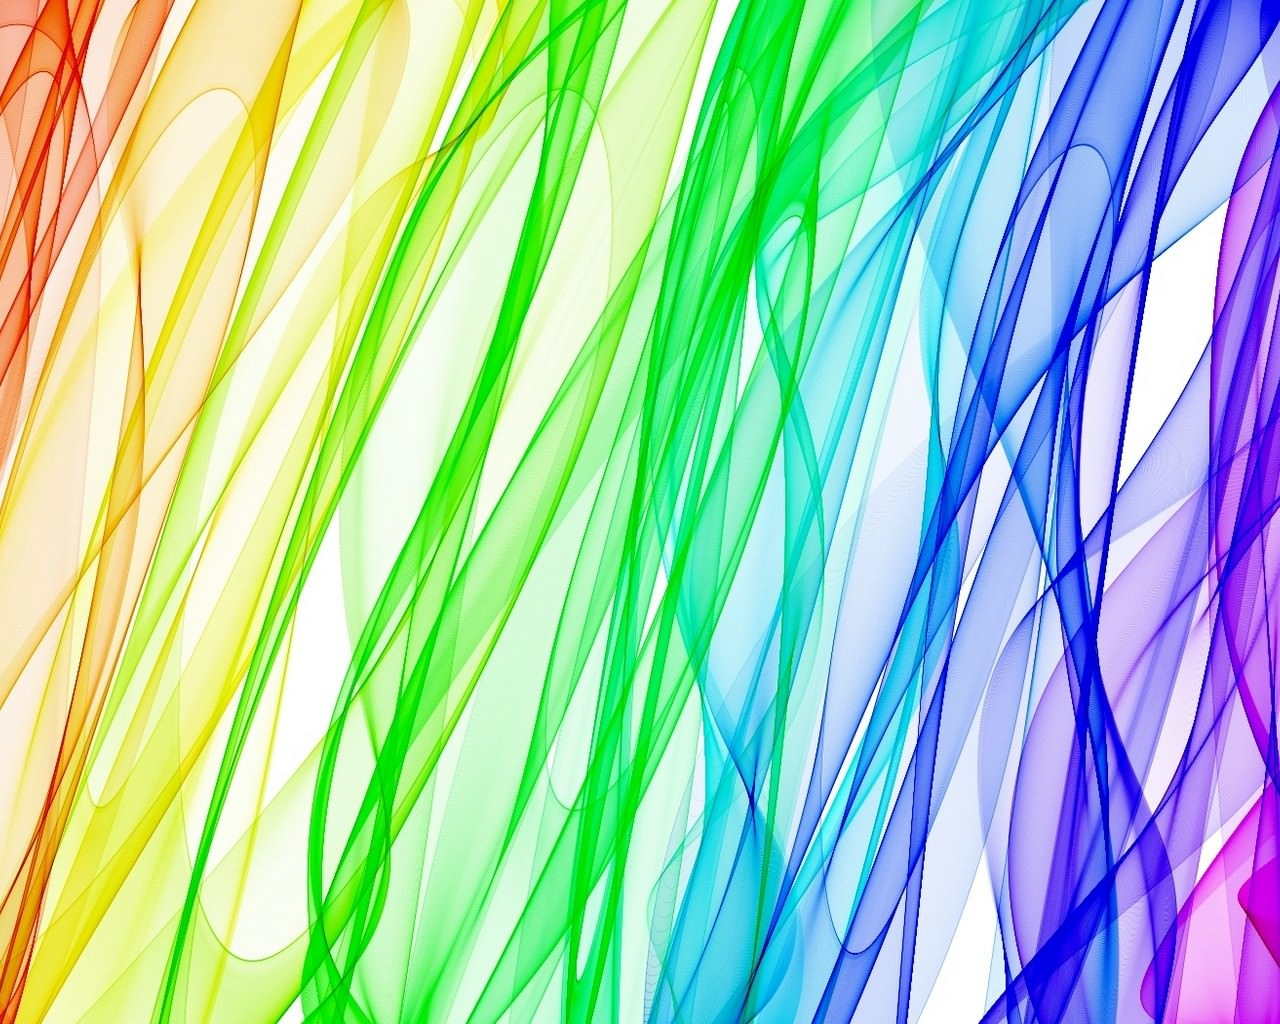 20 hd rainbow background images and wallpapers free